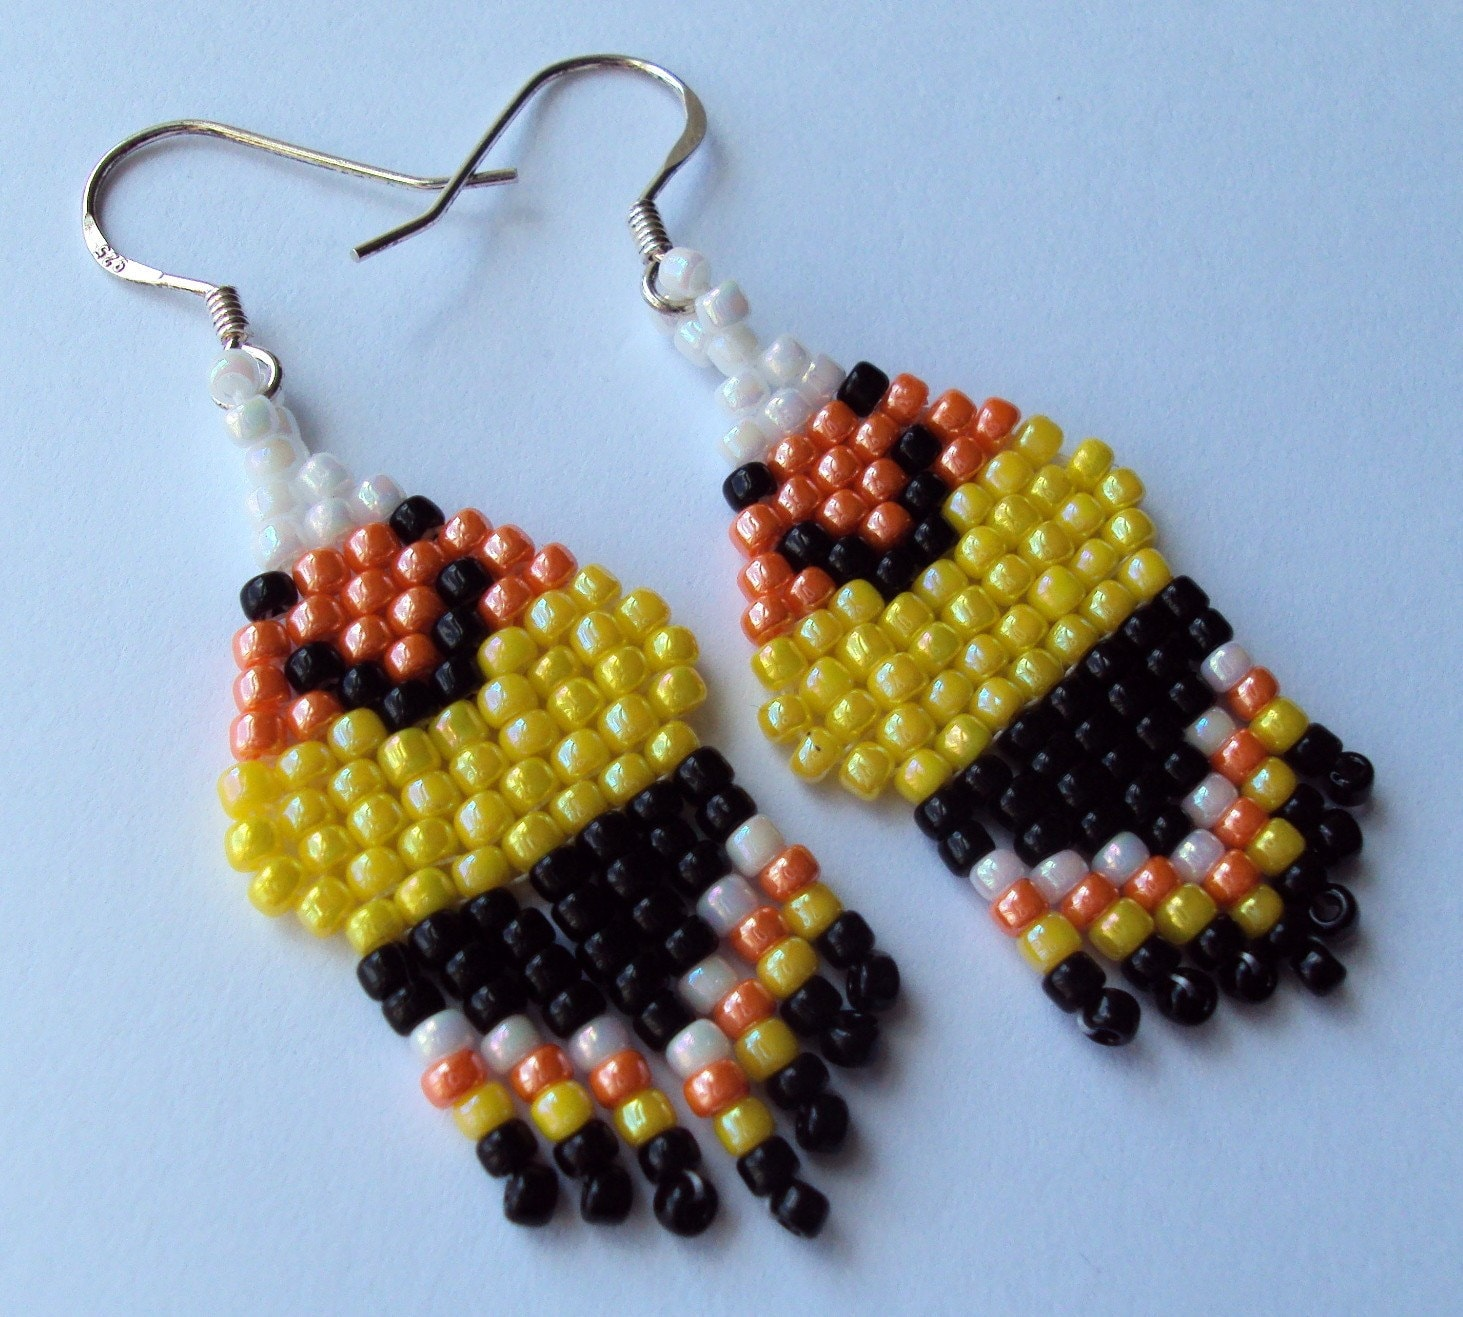 Handwoven Halloween Happy Candy Corn Dangle Earrings made with Glass Beads